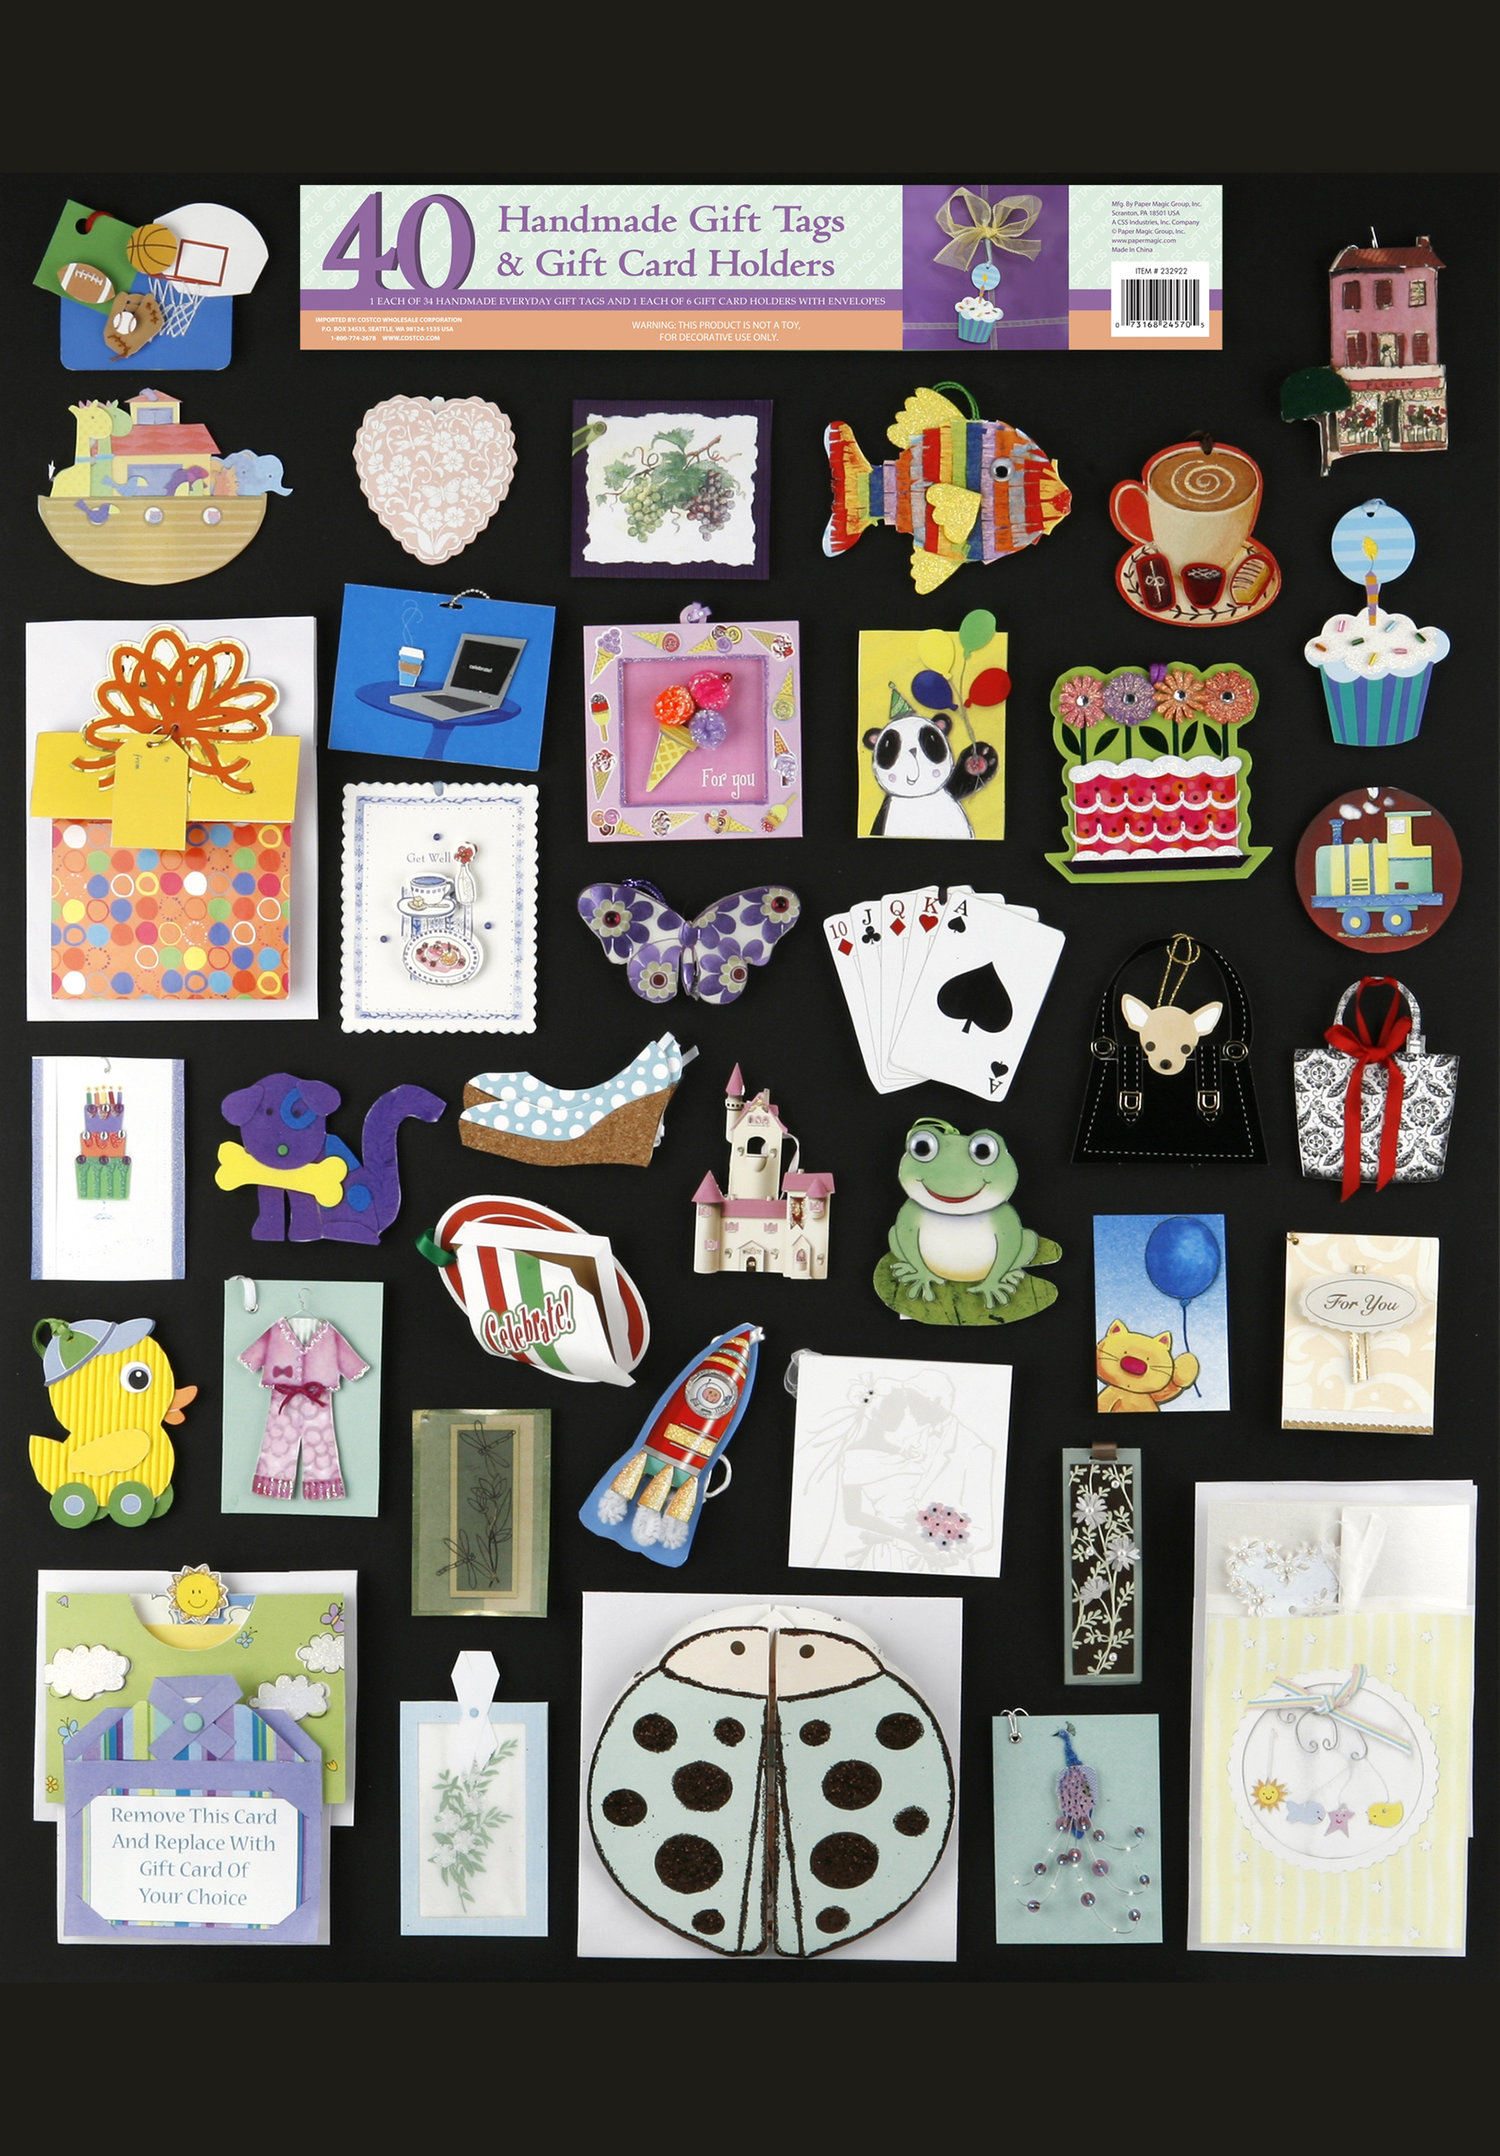 40 count gift tags gift card holders - Gift Card Holders Wholesale